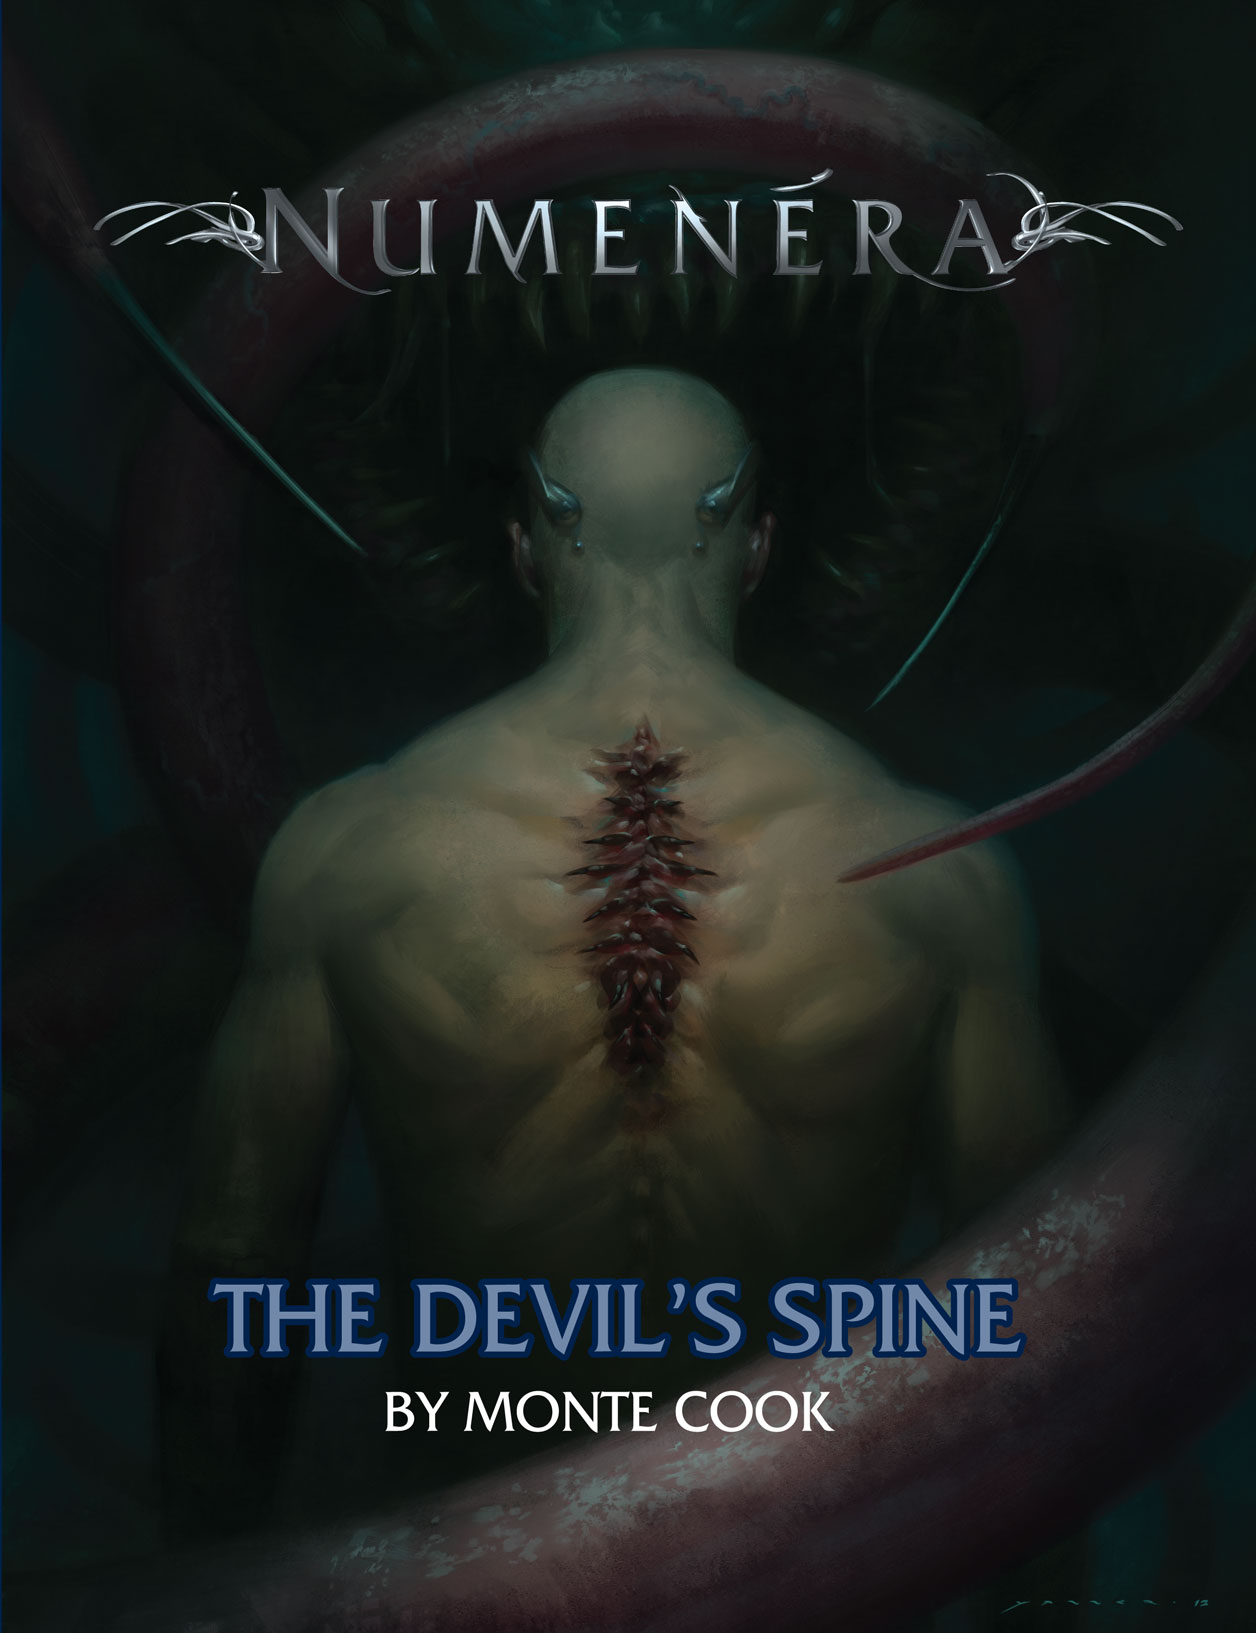 Parasites, Viruses & Underwater Tales Courtesy of The Devil's Spine